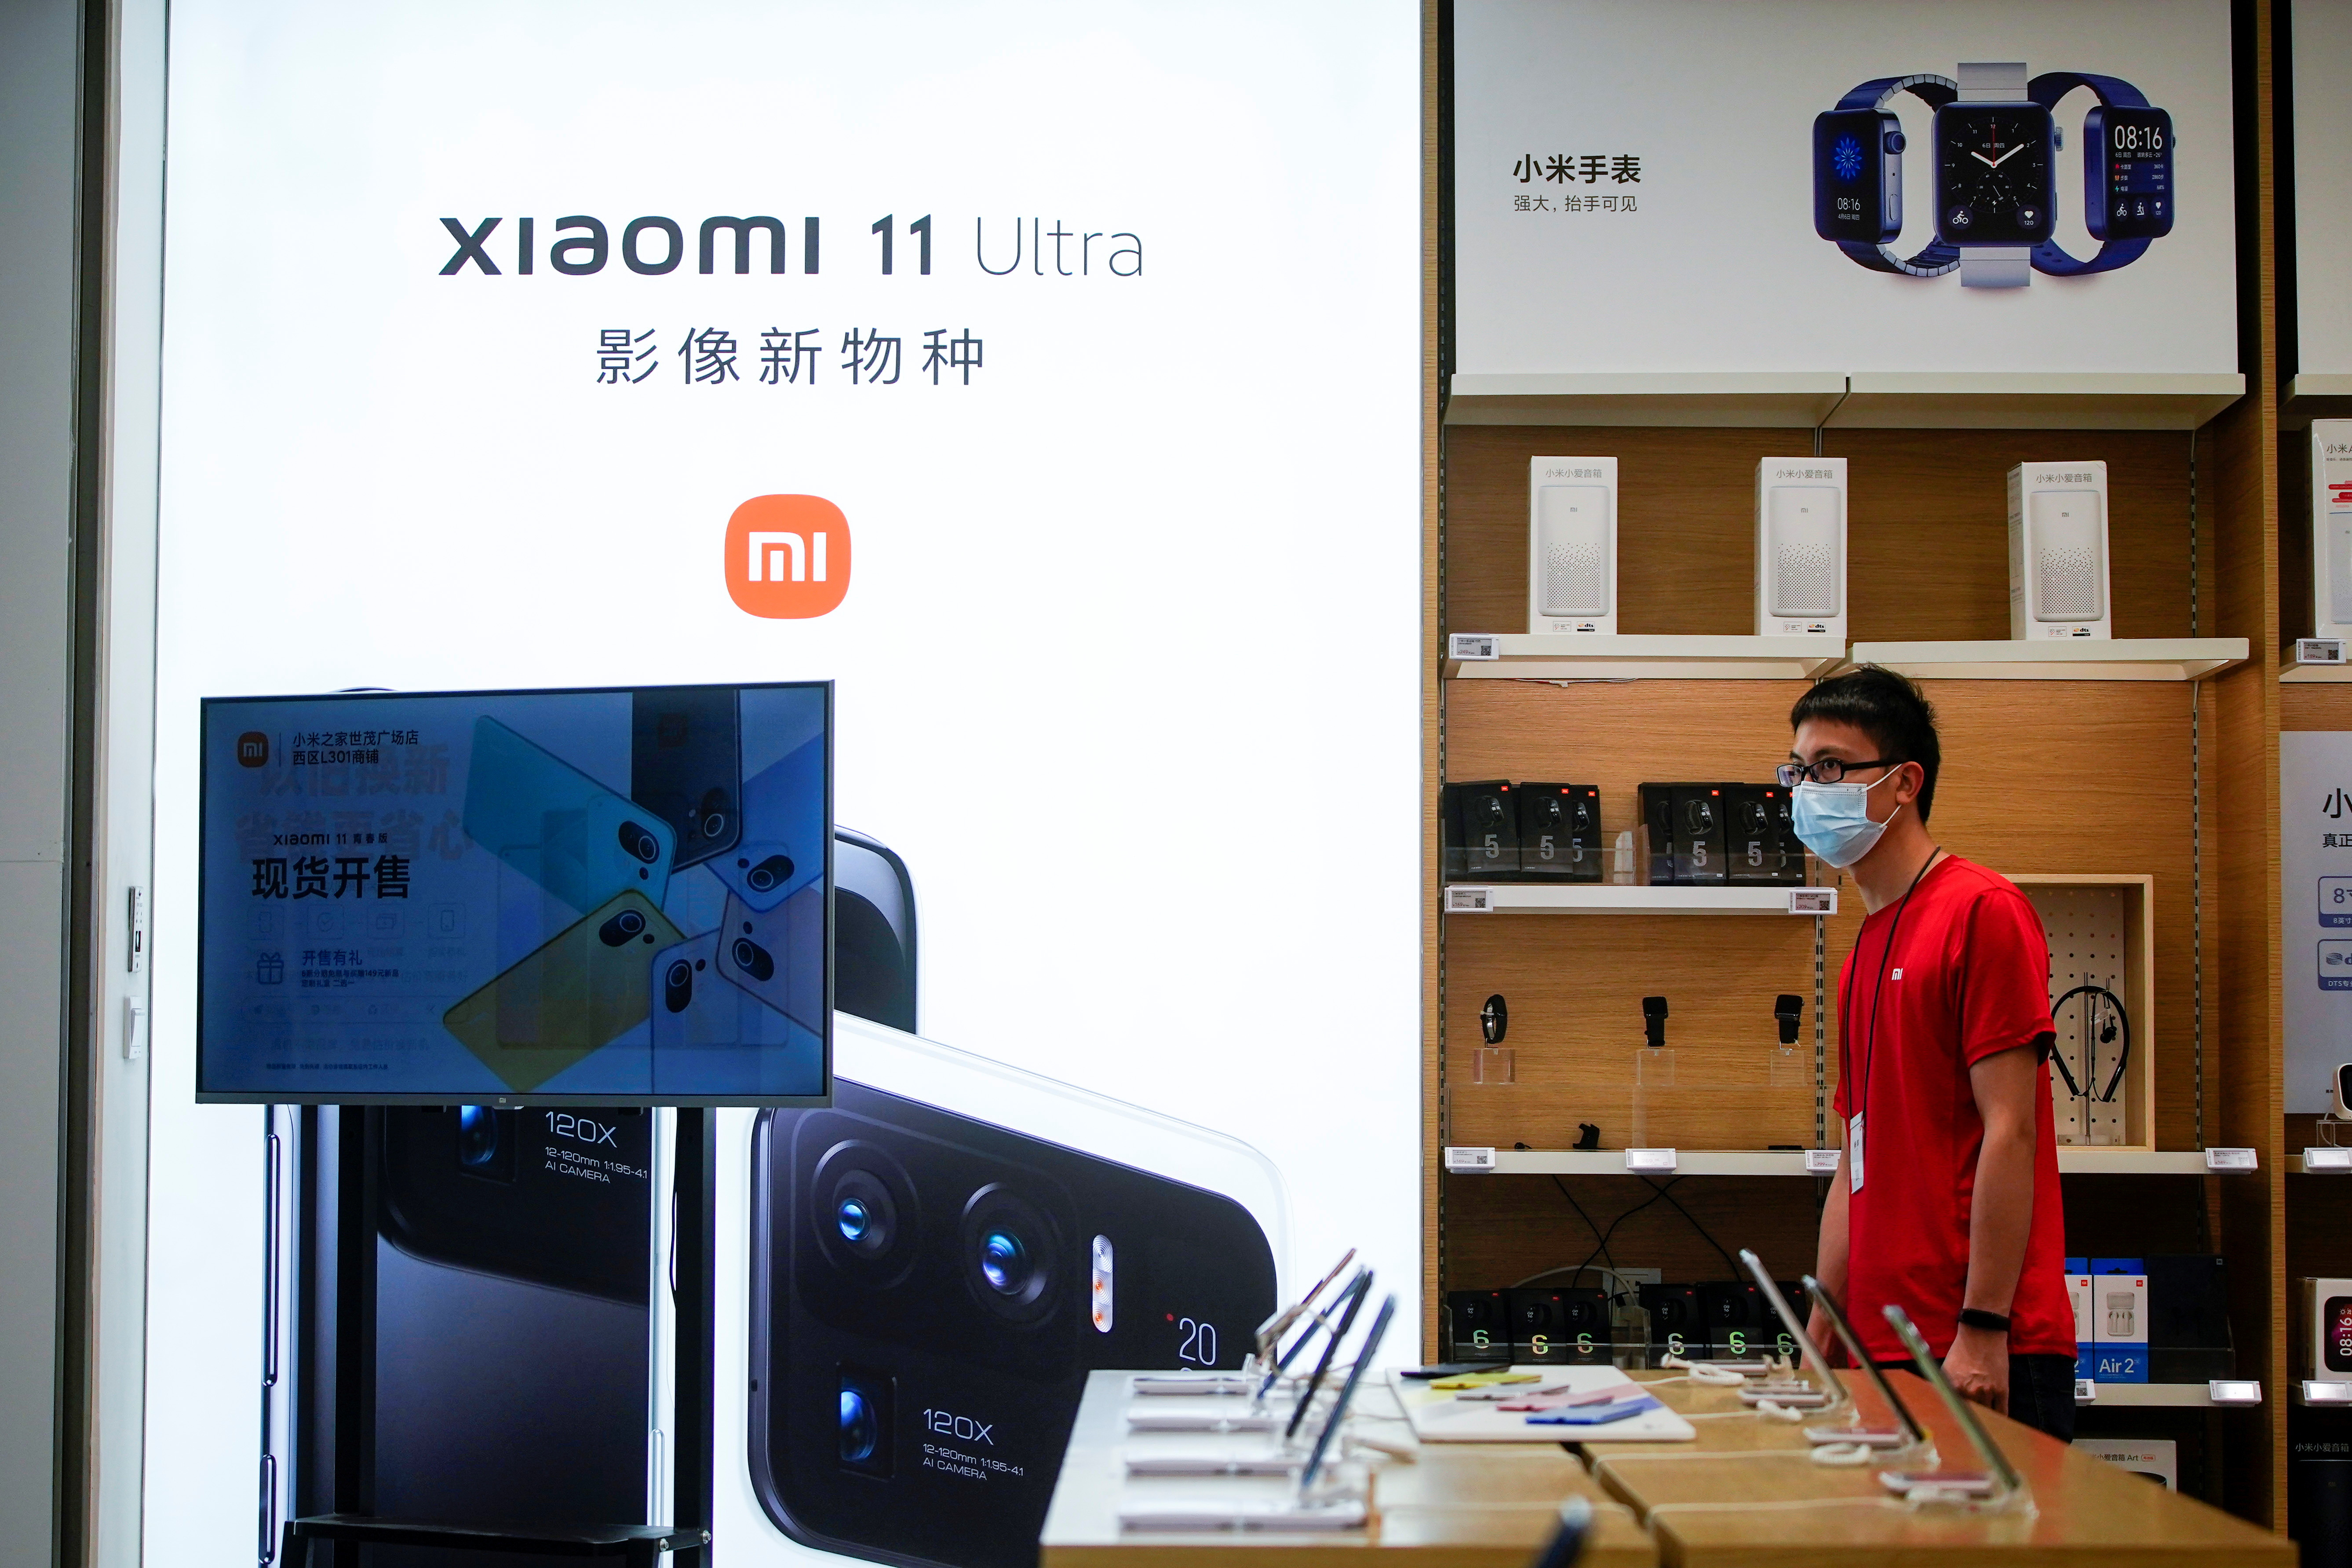 The Xiaomi logo is seen at a Xiaomi shop, in Shanghai, China May 12, 2021. REUTERS/Aly Song